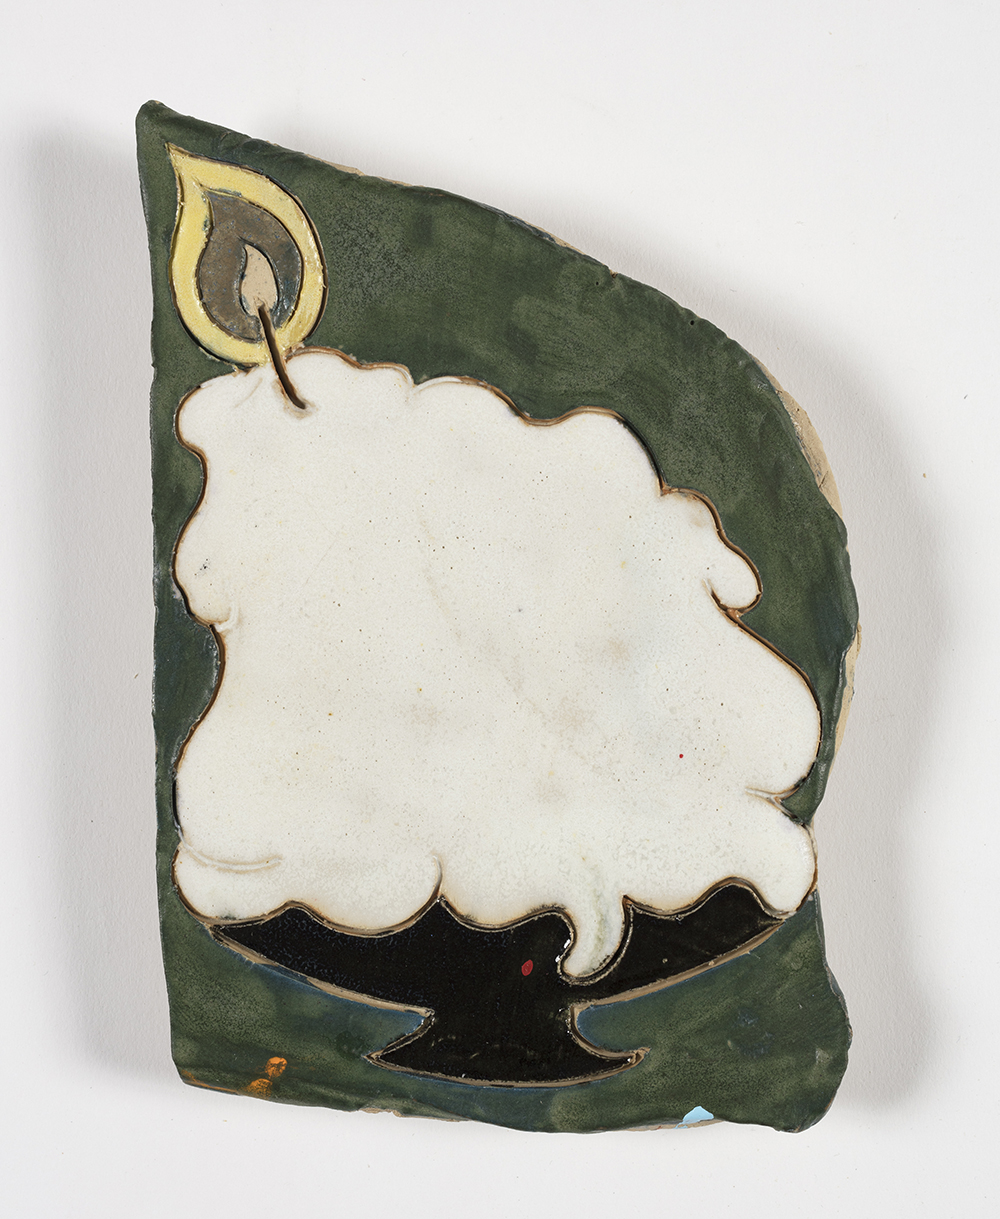 Kevin McNamee-Tweed.<em> Big Candle</em>, 2019. Glazed ceramic, 6 1/2 x 4 1/2 inches (16.5 x 11.4 cm)